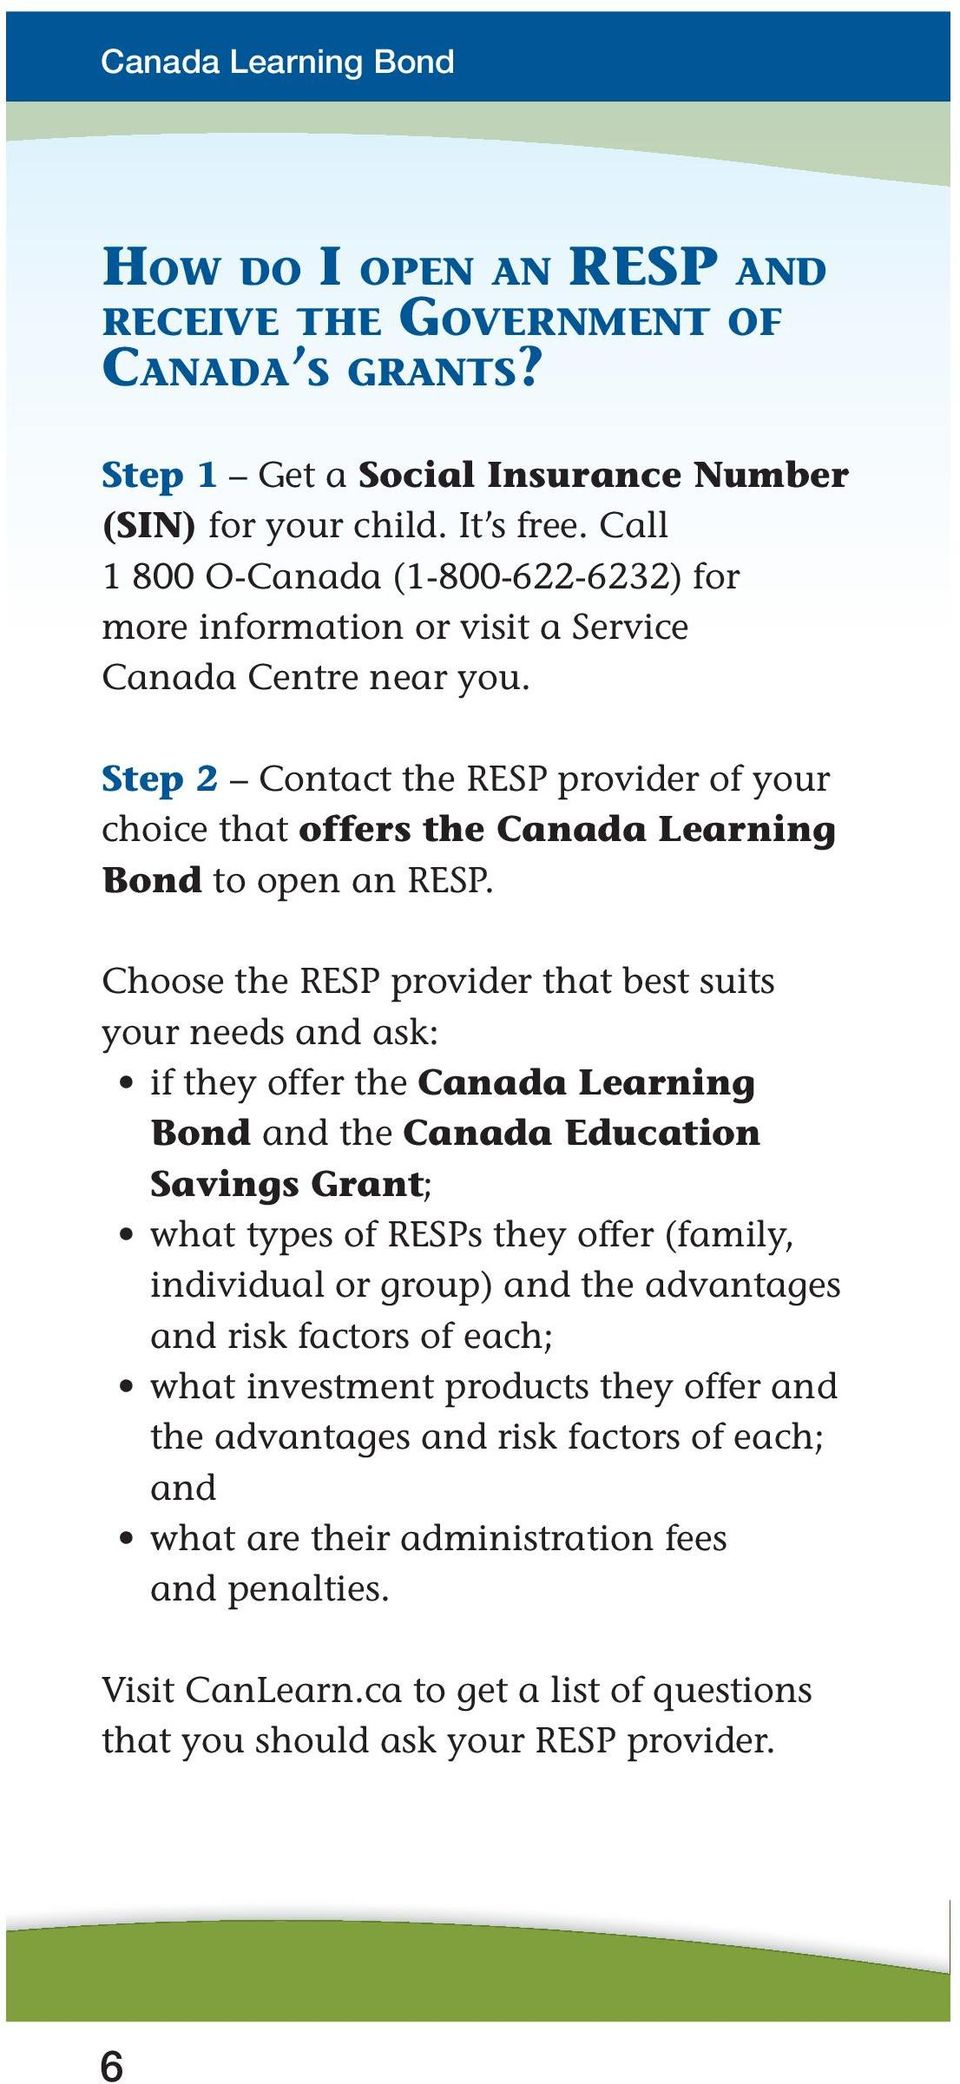 Step 2 Contact the RESP provider of your choice that offers the Canada Learning Bond to open an RESP.